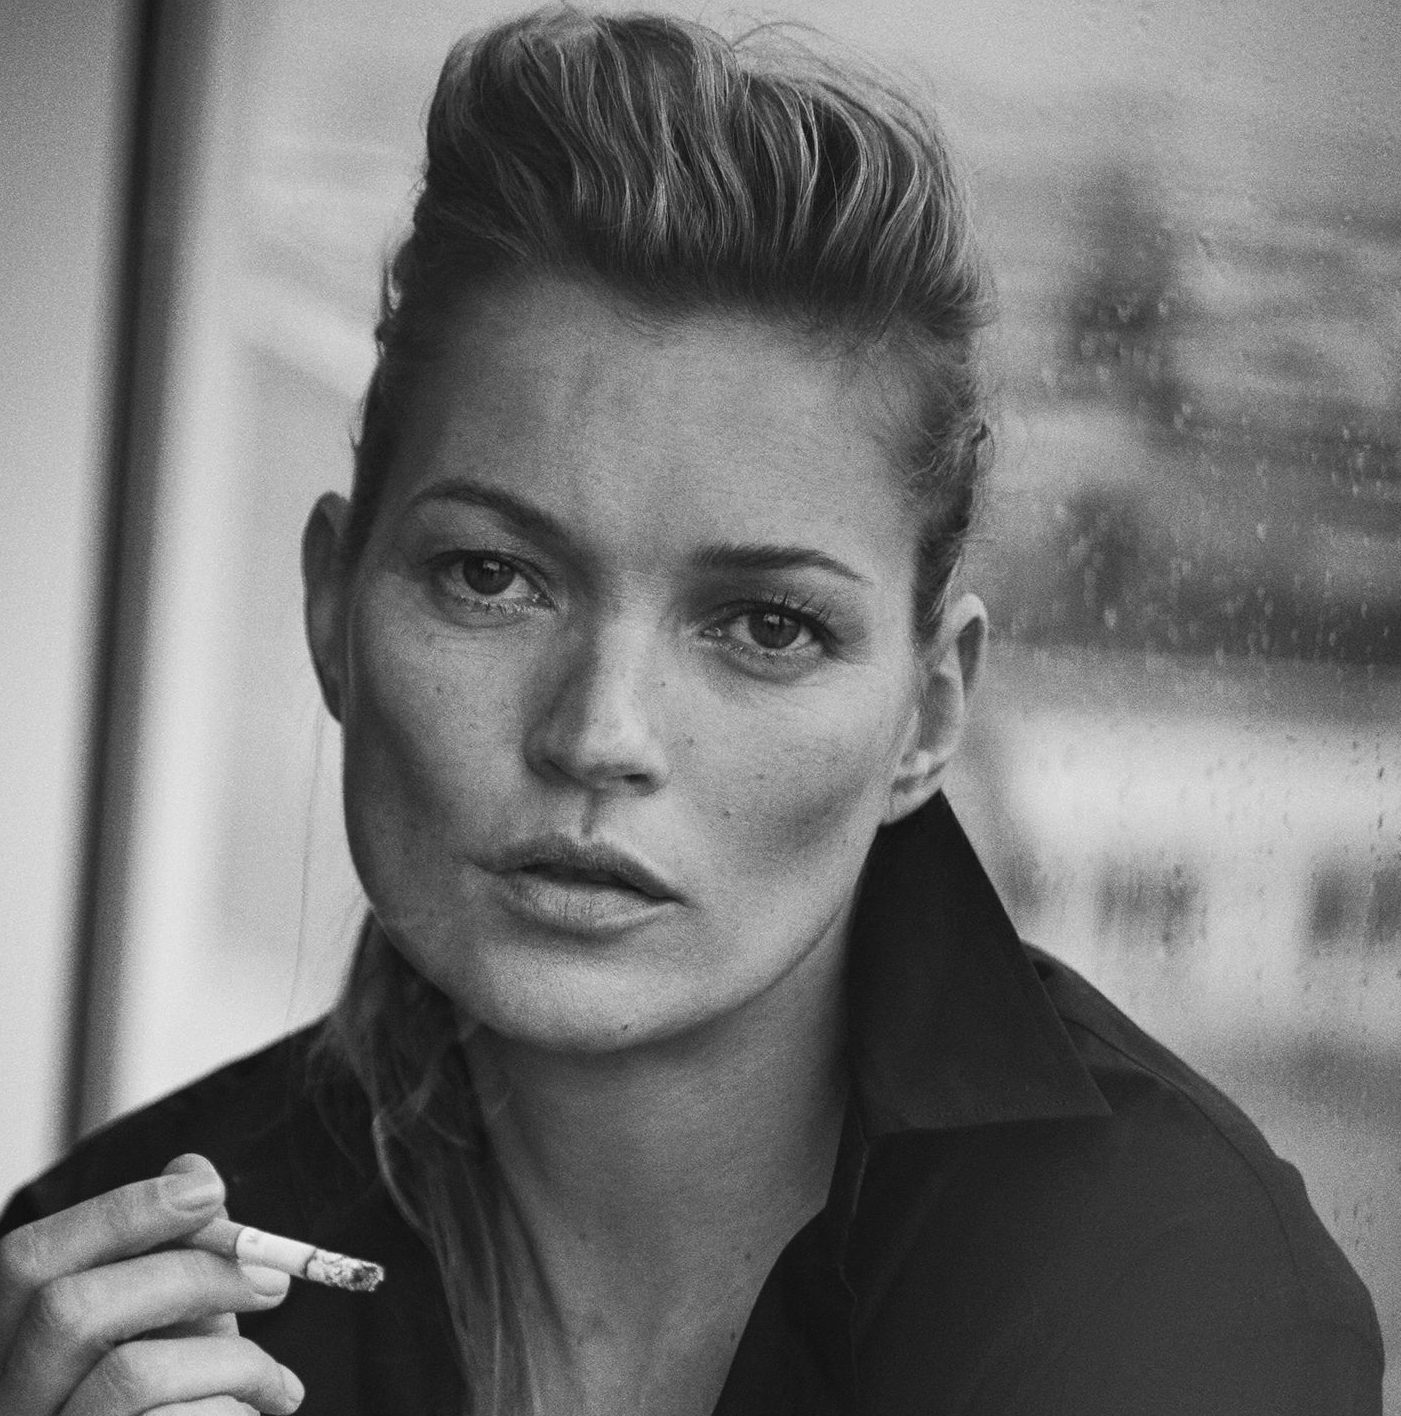 Peter Lindbergh: Peter Lindbergh A Different Vision On Fashion Photography